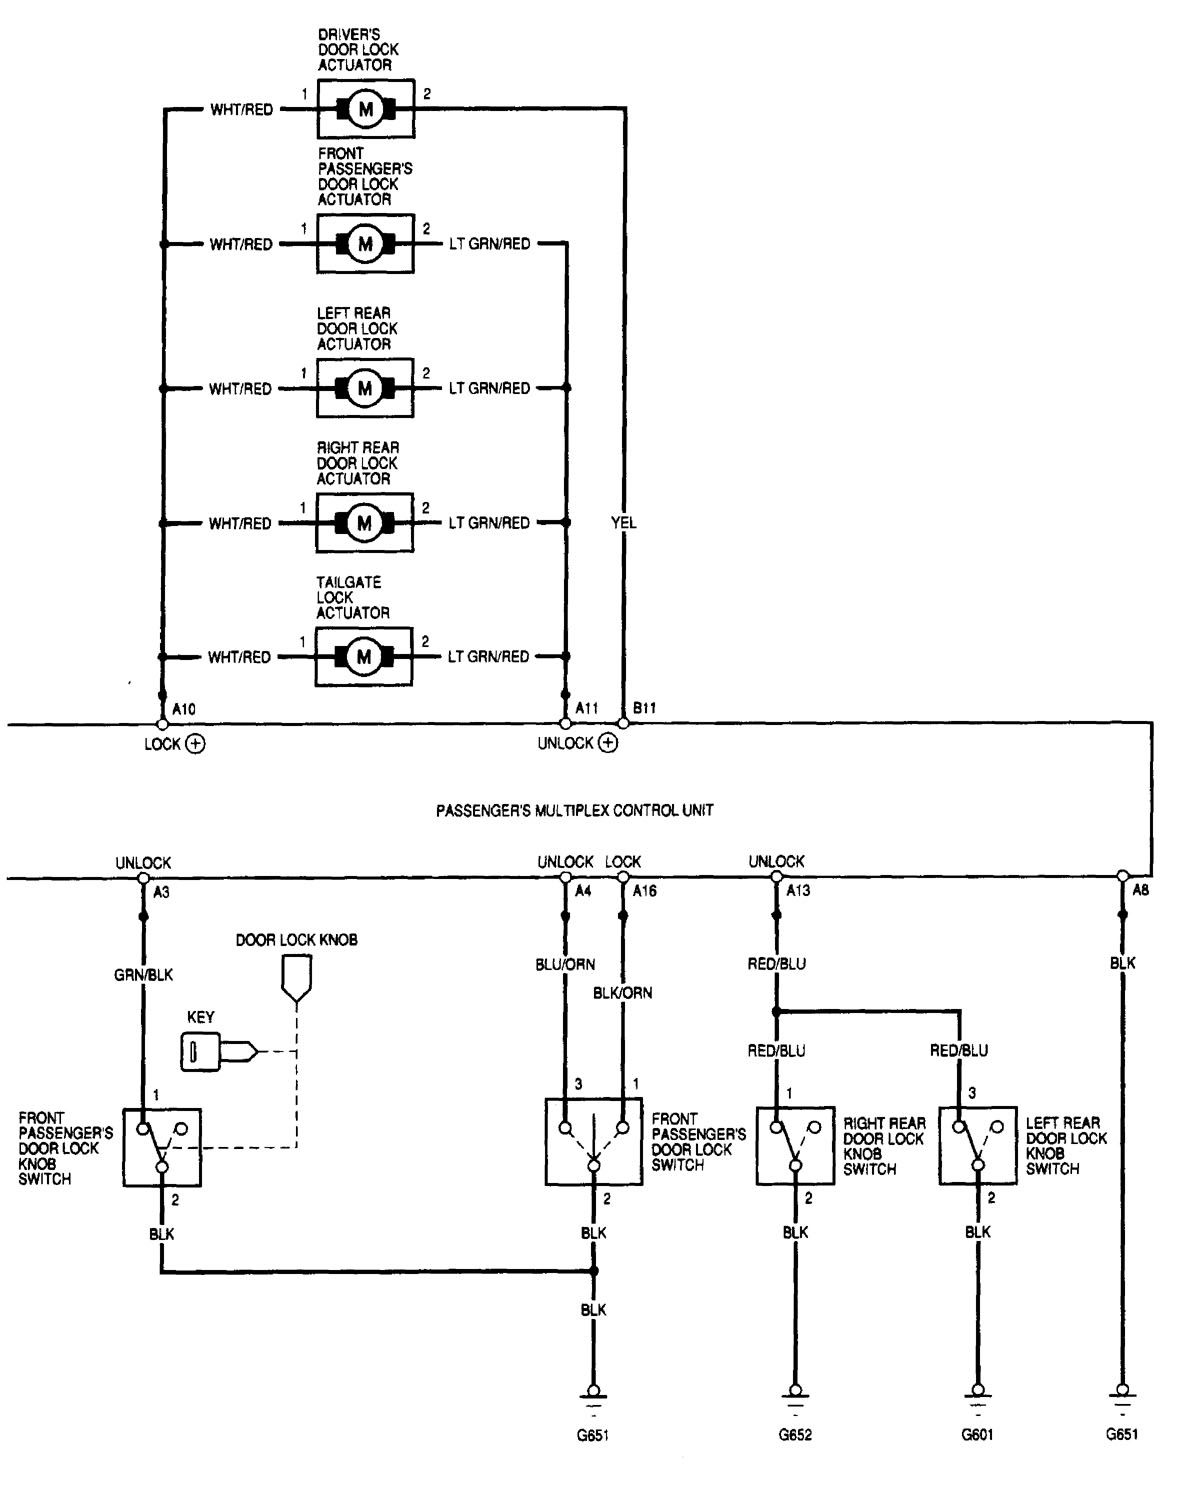 [DIAGRAM_38IS]  DIAGRAM] Bulldog Security Remote Starter Wiring Diagram 1999 Chevy Silverado  FULL Version HD Quality Chevy Silverado - MC33926SCHEMATIC5374.CONTOROCK.IT | Bulldog Security Remote Starter Wiring Diagram 1999 Chevy Silverado |  | CONTO ROCK